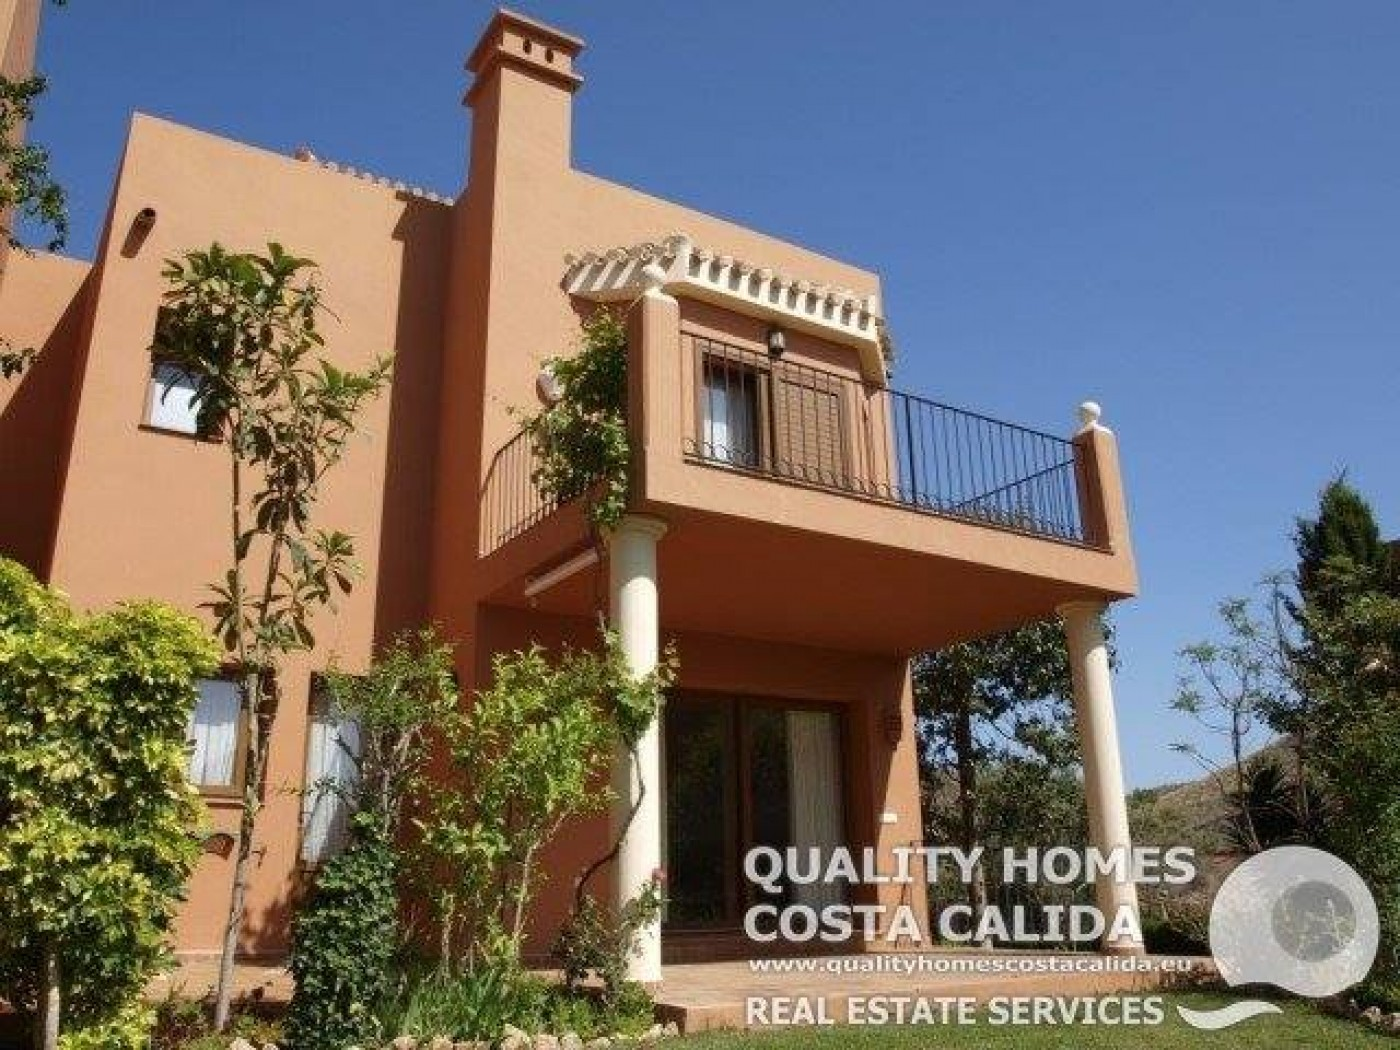 Quality Homes Costa Cálida